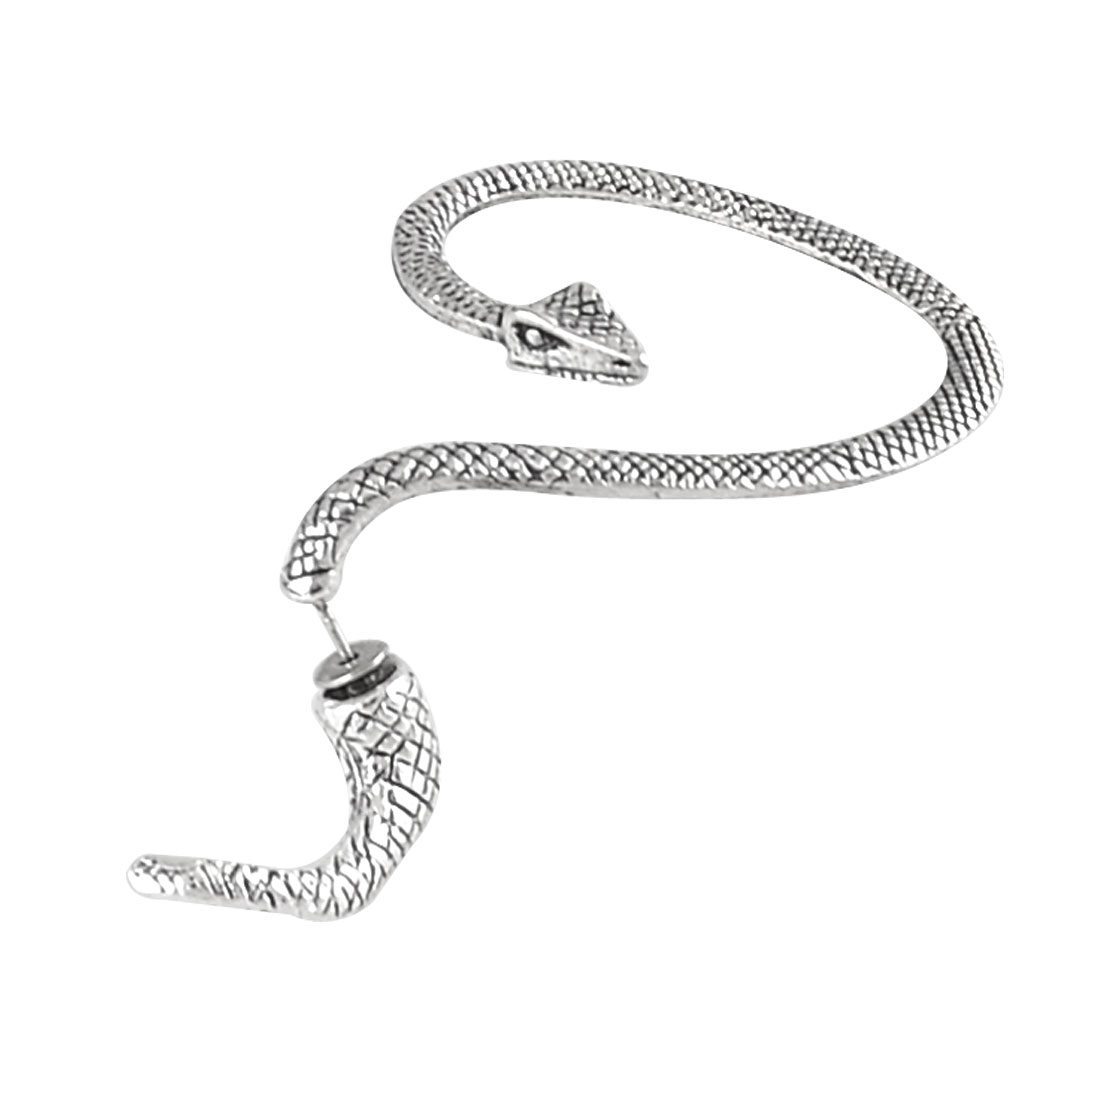 Antique Silver Tone Snake Shaped Ornament Stud Earrings Gift for Women Men